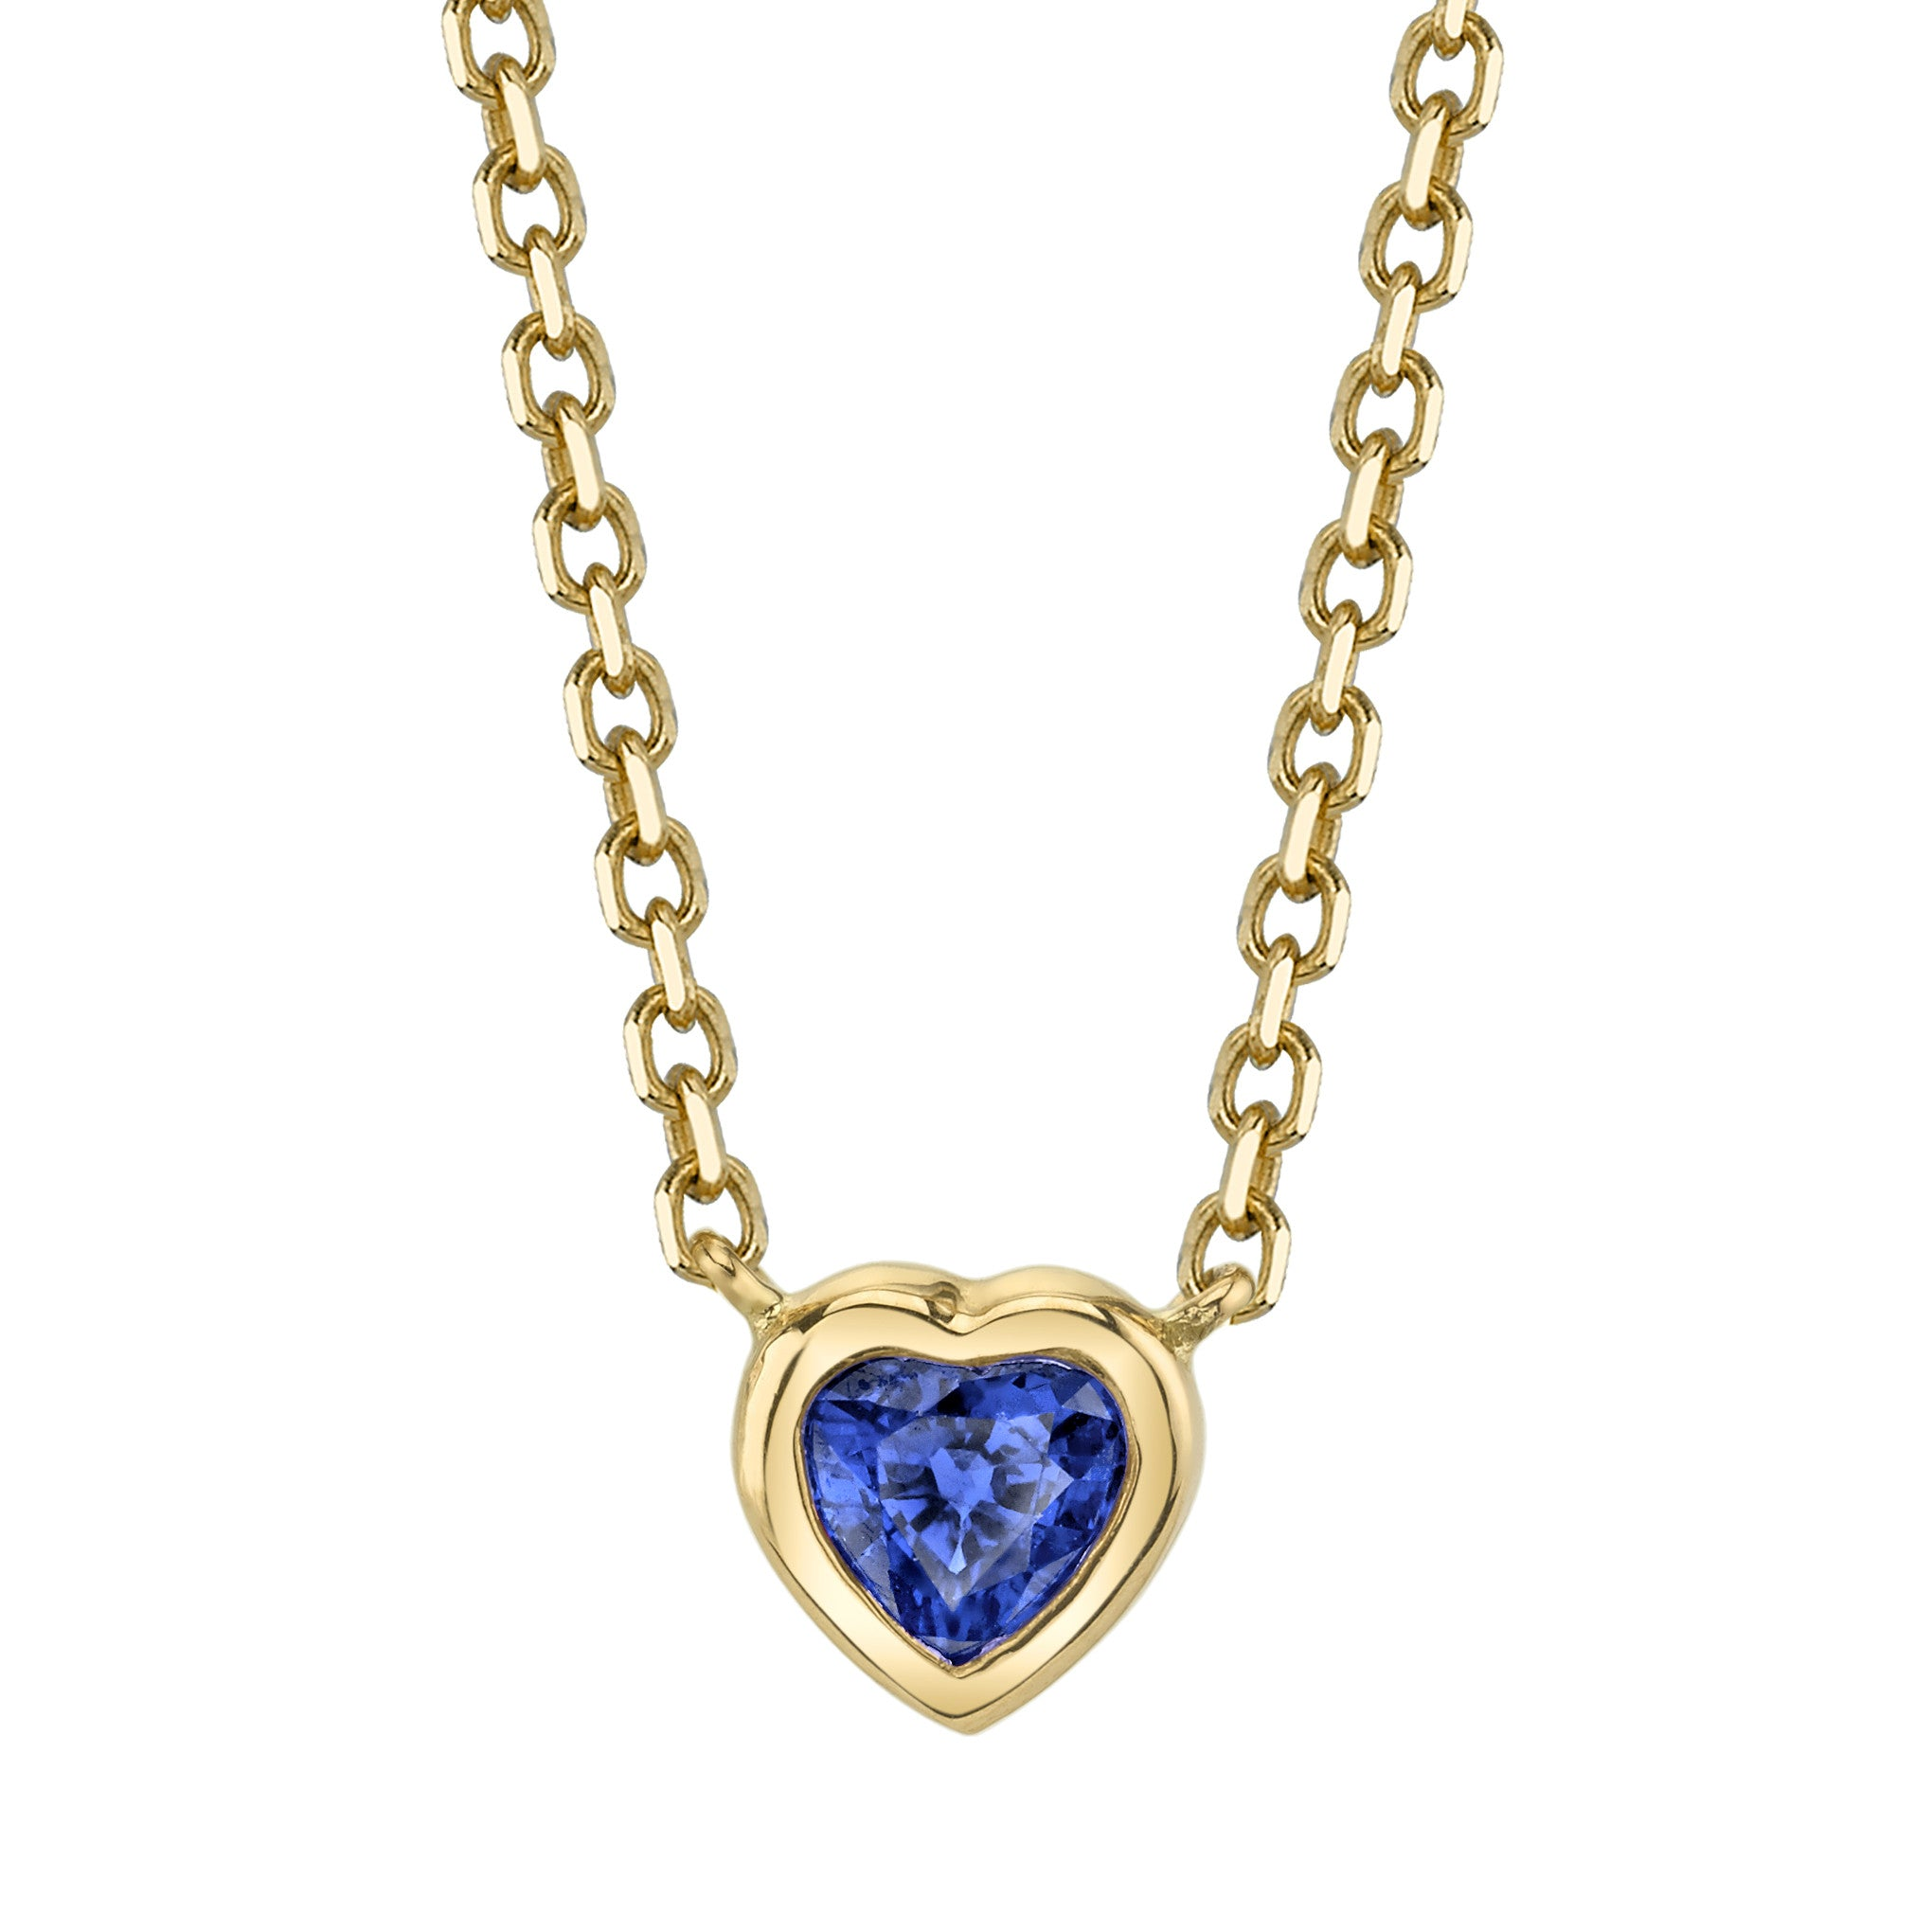 oefw glass il necklace heart sterling cobalt zoom murano pendant listing blue fullxfull